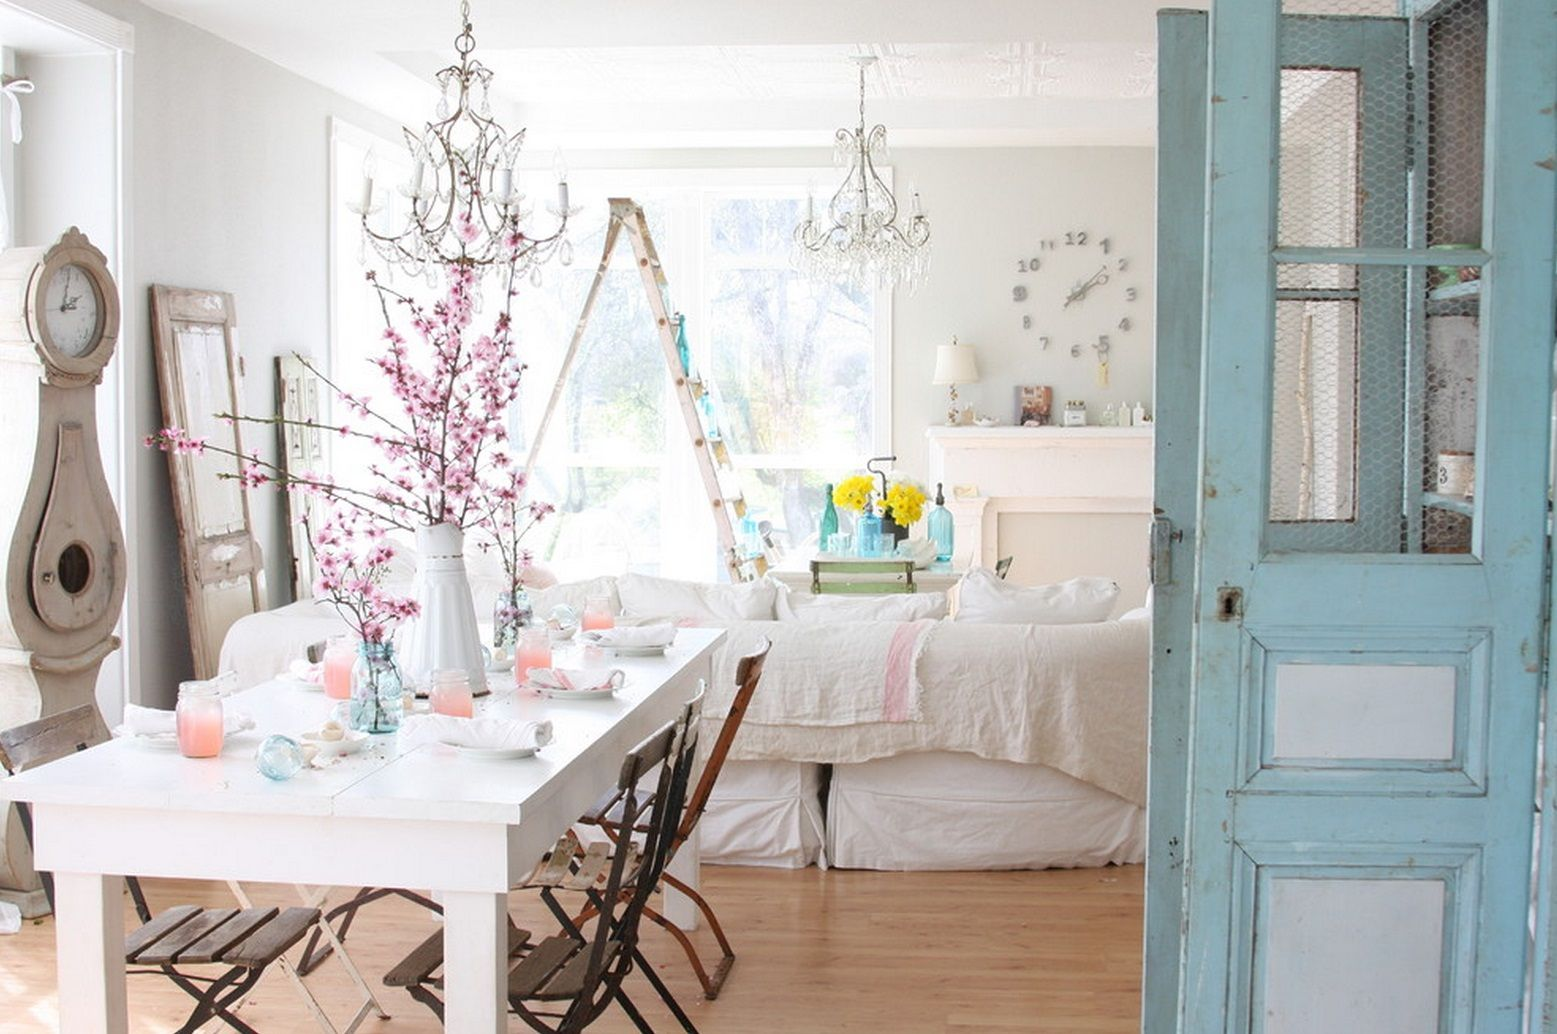 Shabby Style Shabby Chic Interior Design Style - Small Design Ideas